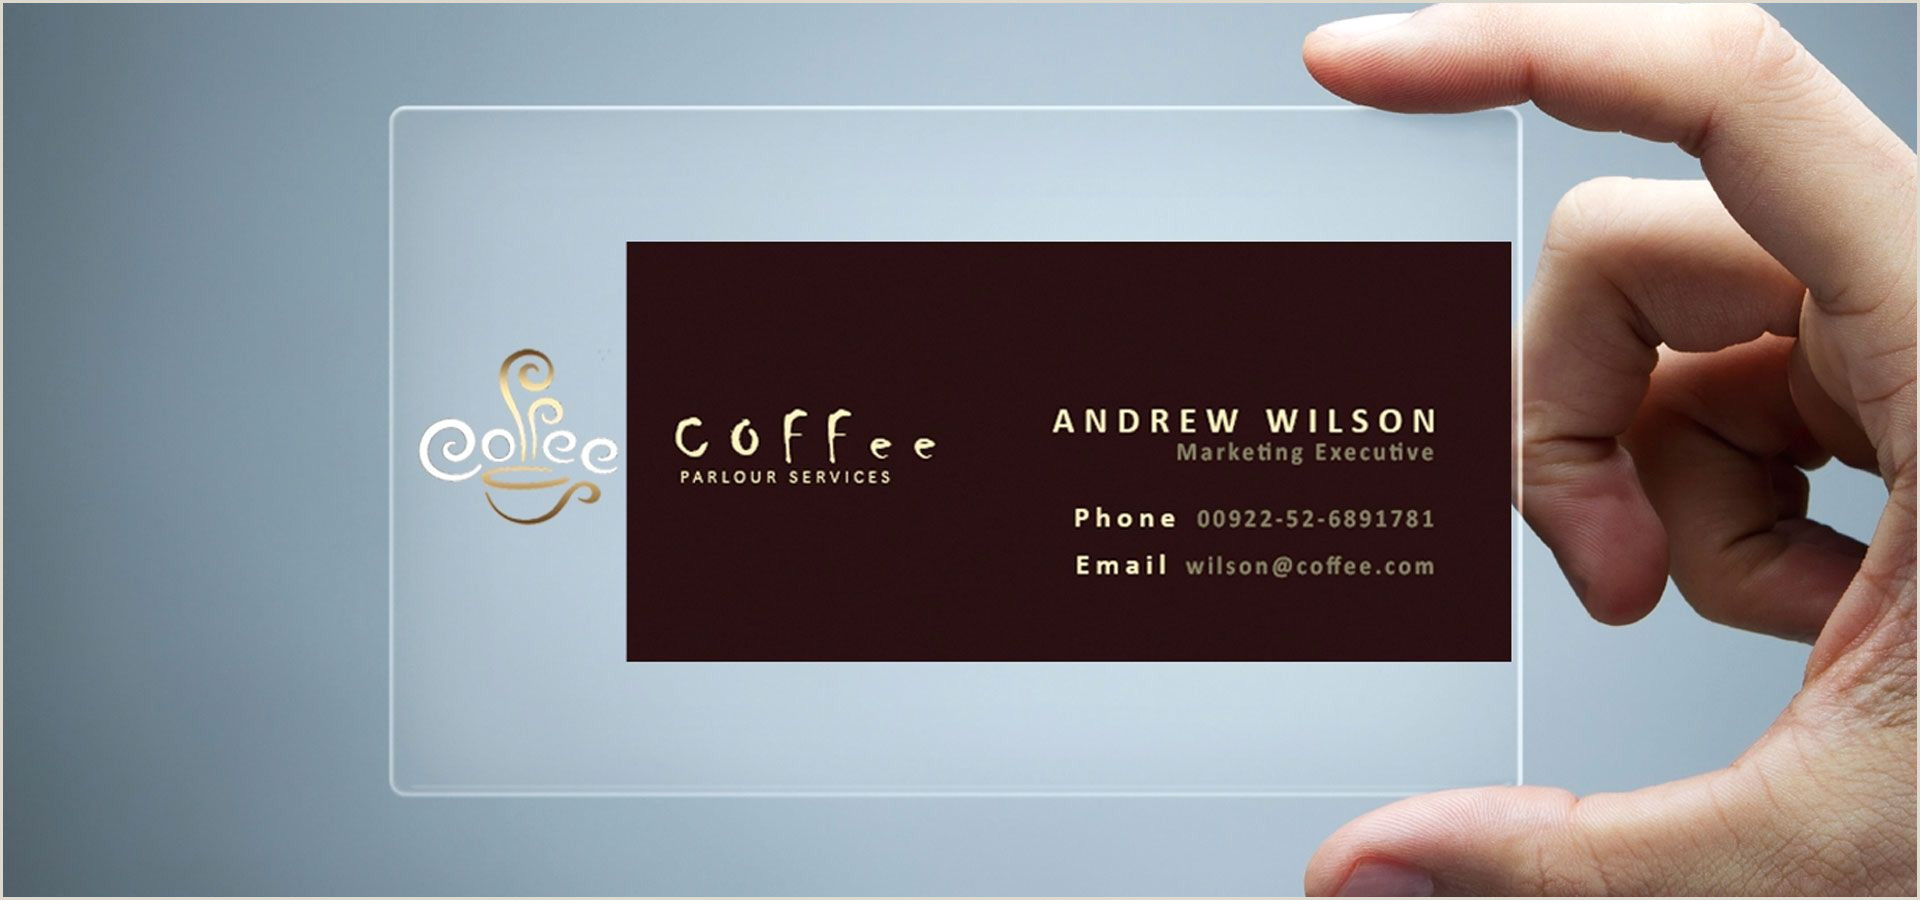 The Best Business Cards For Small Business Owners The Breathtaking 023 Template Ideas Business Card